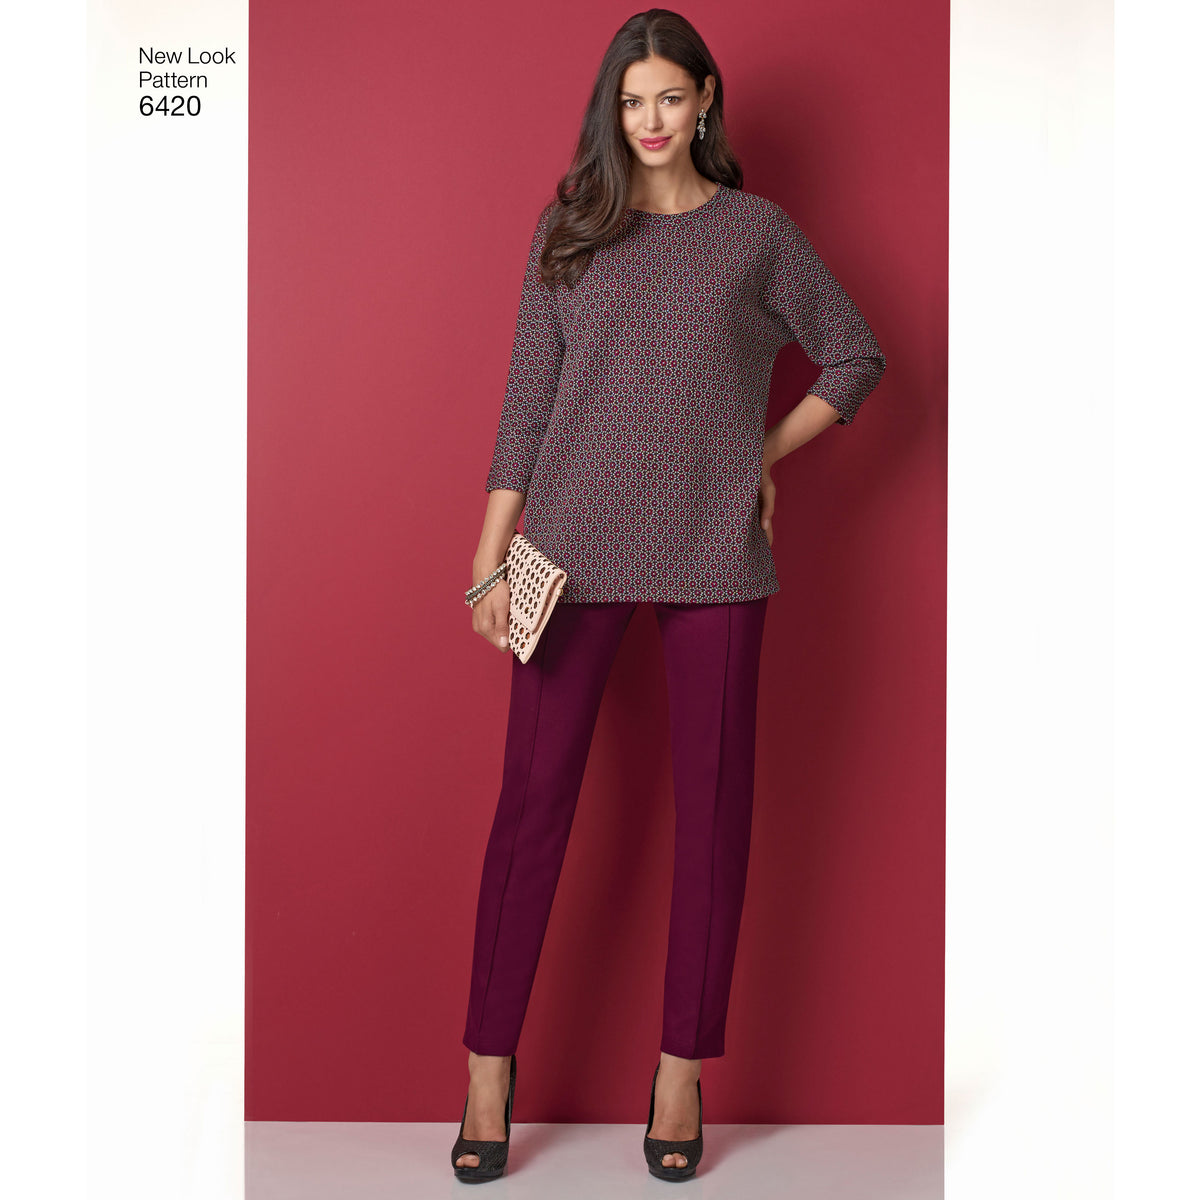 6420 Misses' Knit Skirt, Pants and Top